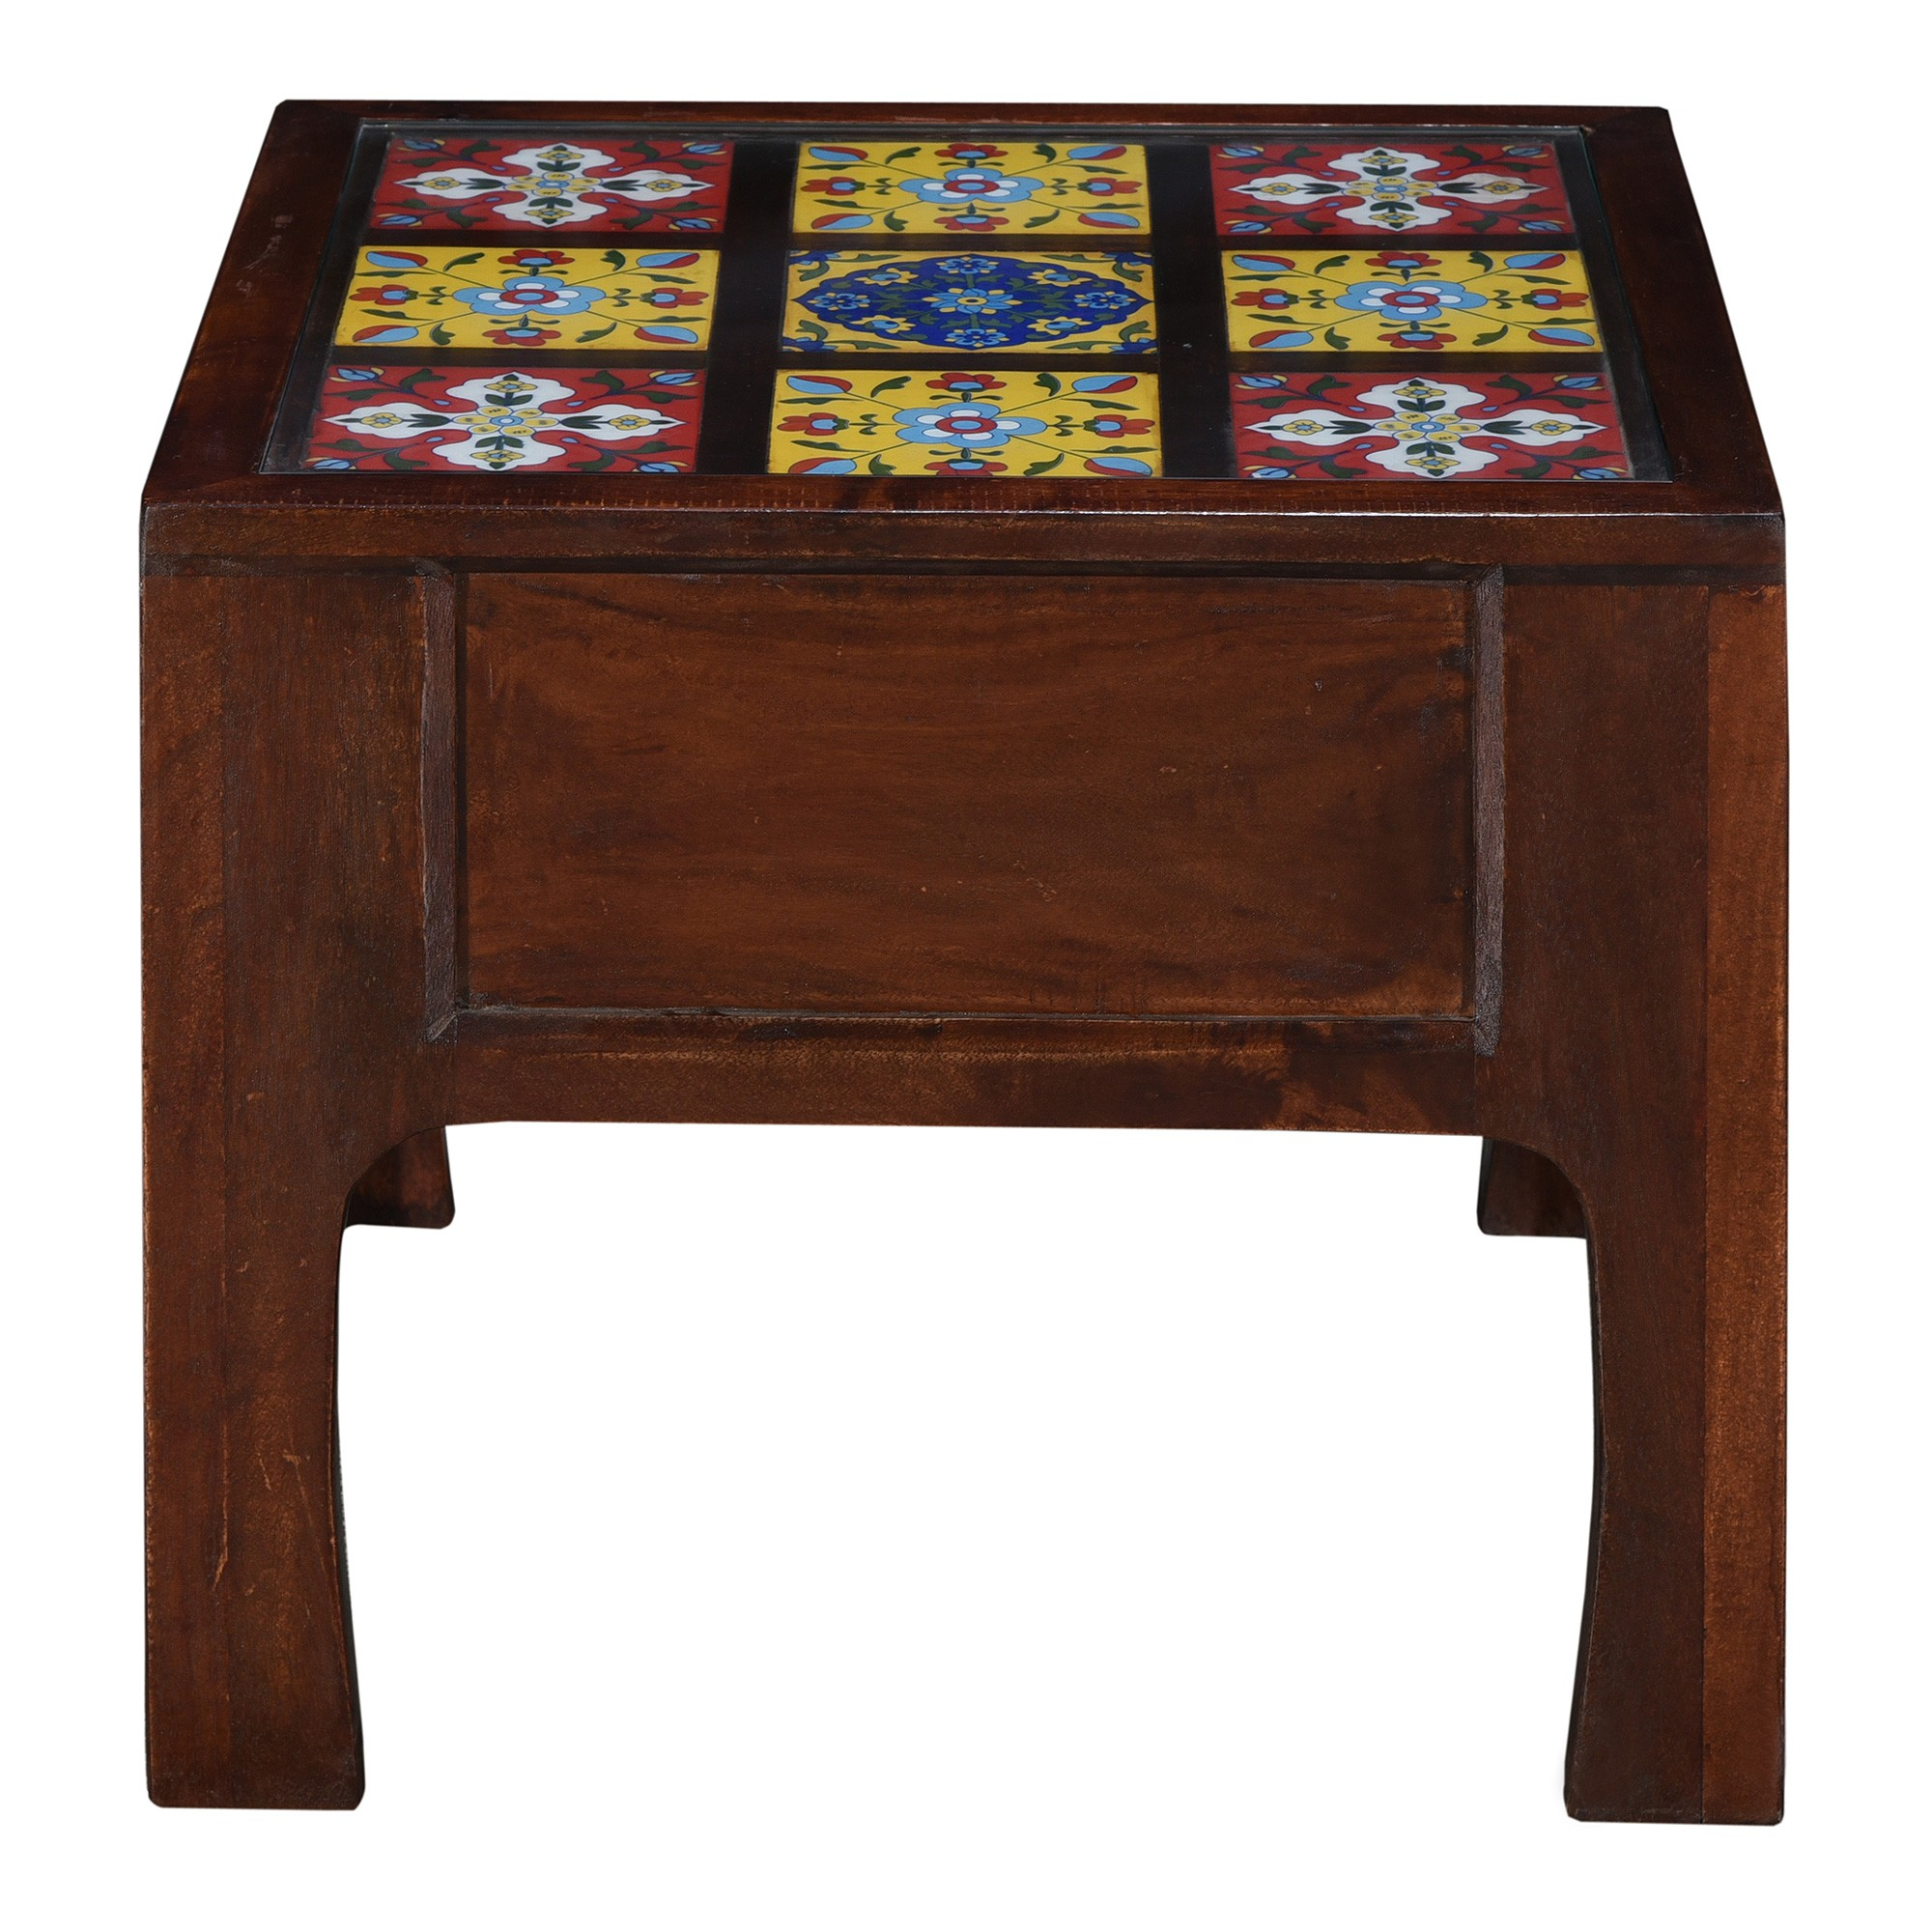 Neptune Moroccan Tile Inlay Timber Square Coffee Table, 60cm